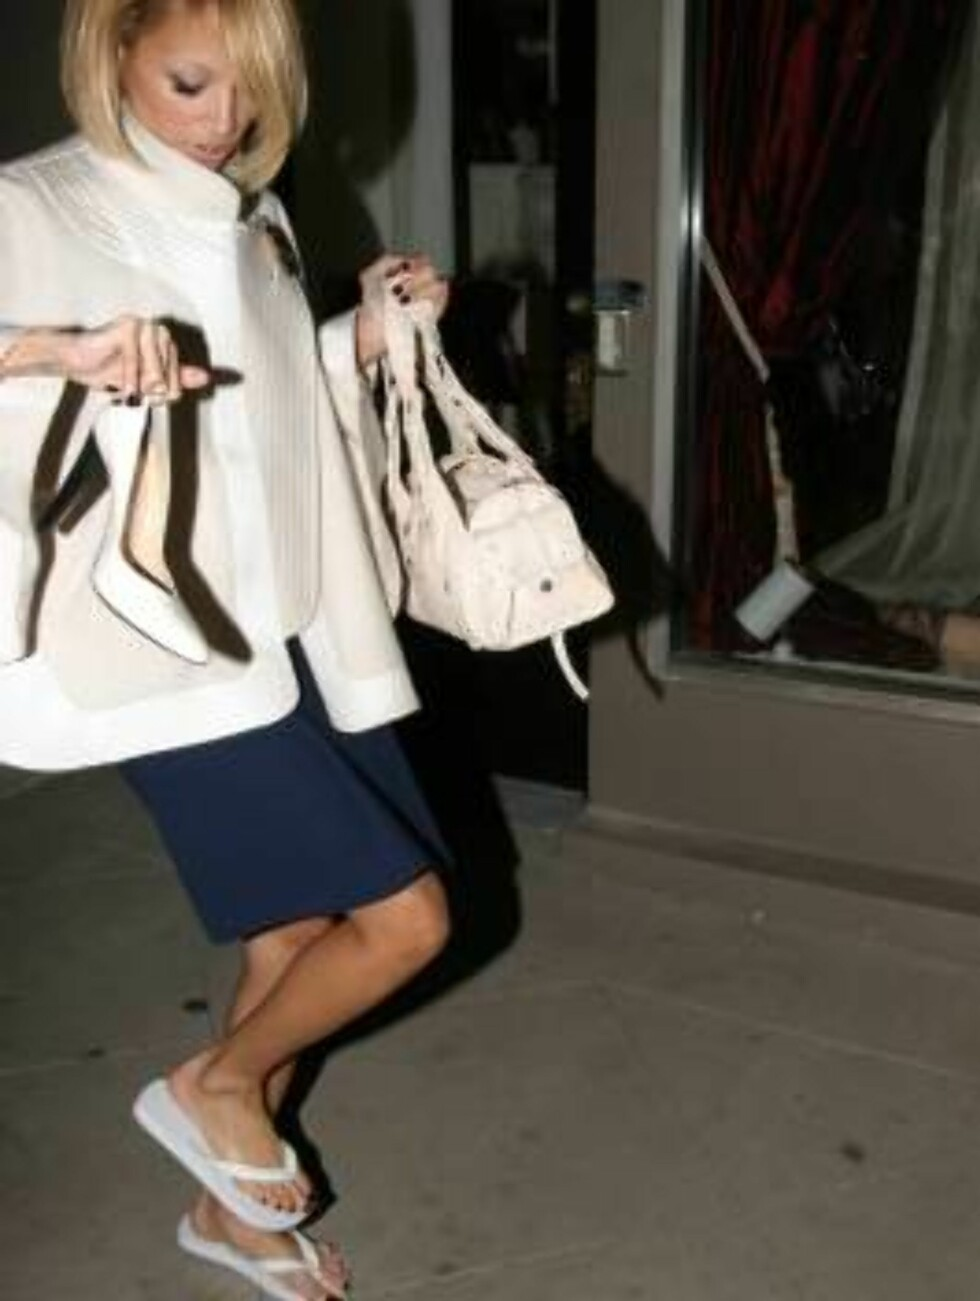 Nicole Richie going for manicure and pedicure at L.A.vie orange drops her shoes as she leaves the place with flip-flops. December 3, 2005 X17agency EXCXLUSIVE / ALL OVER PRESS Foto: All Over Press